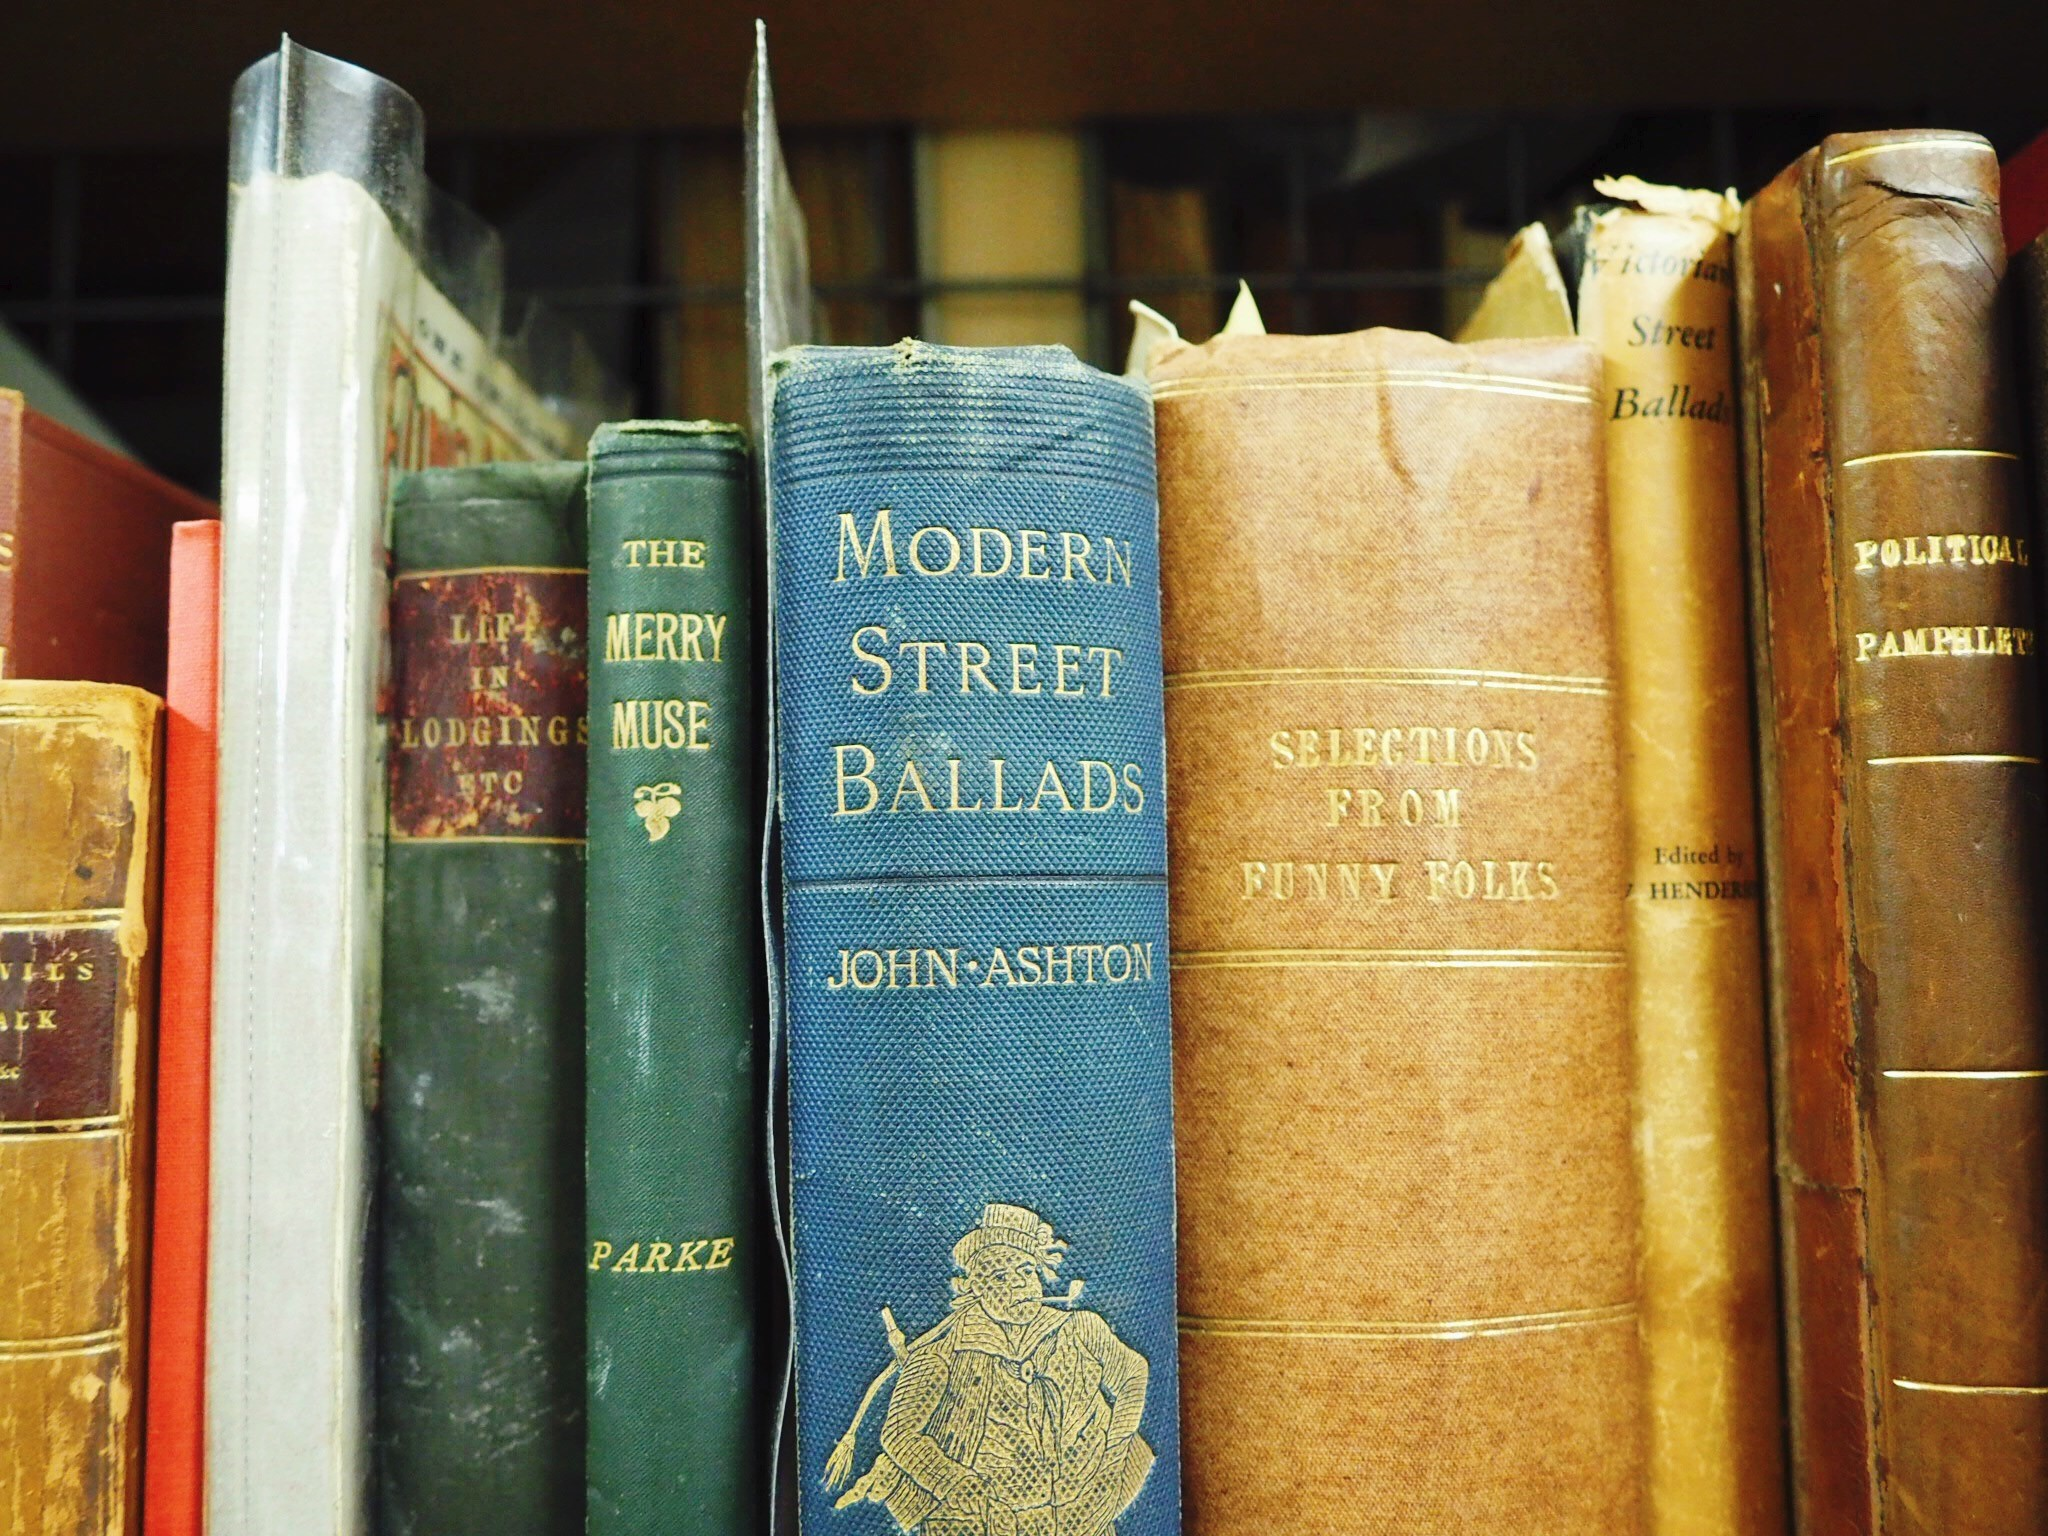 A colourful row of books from the John Crow Ballad and Song collection.